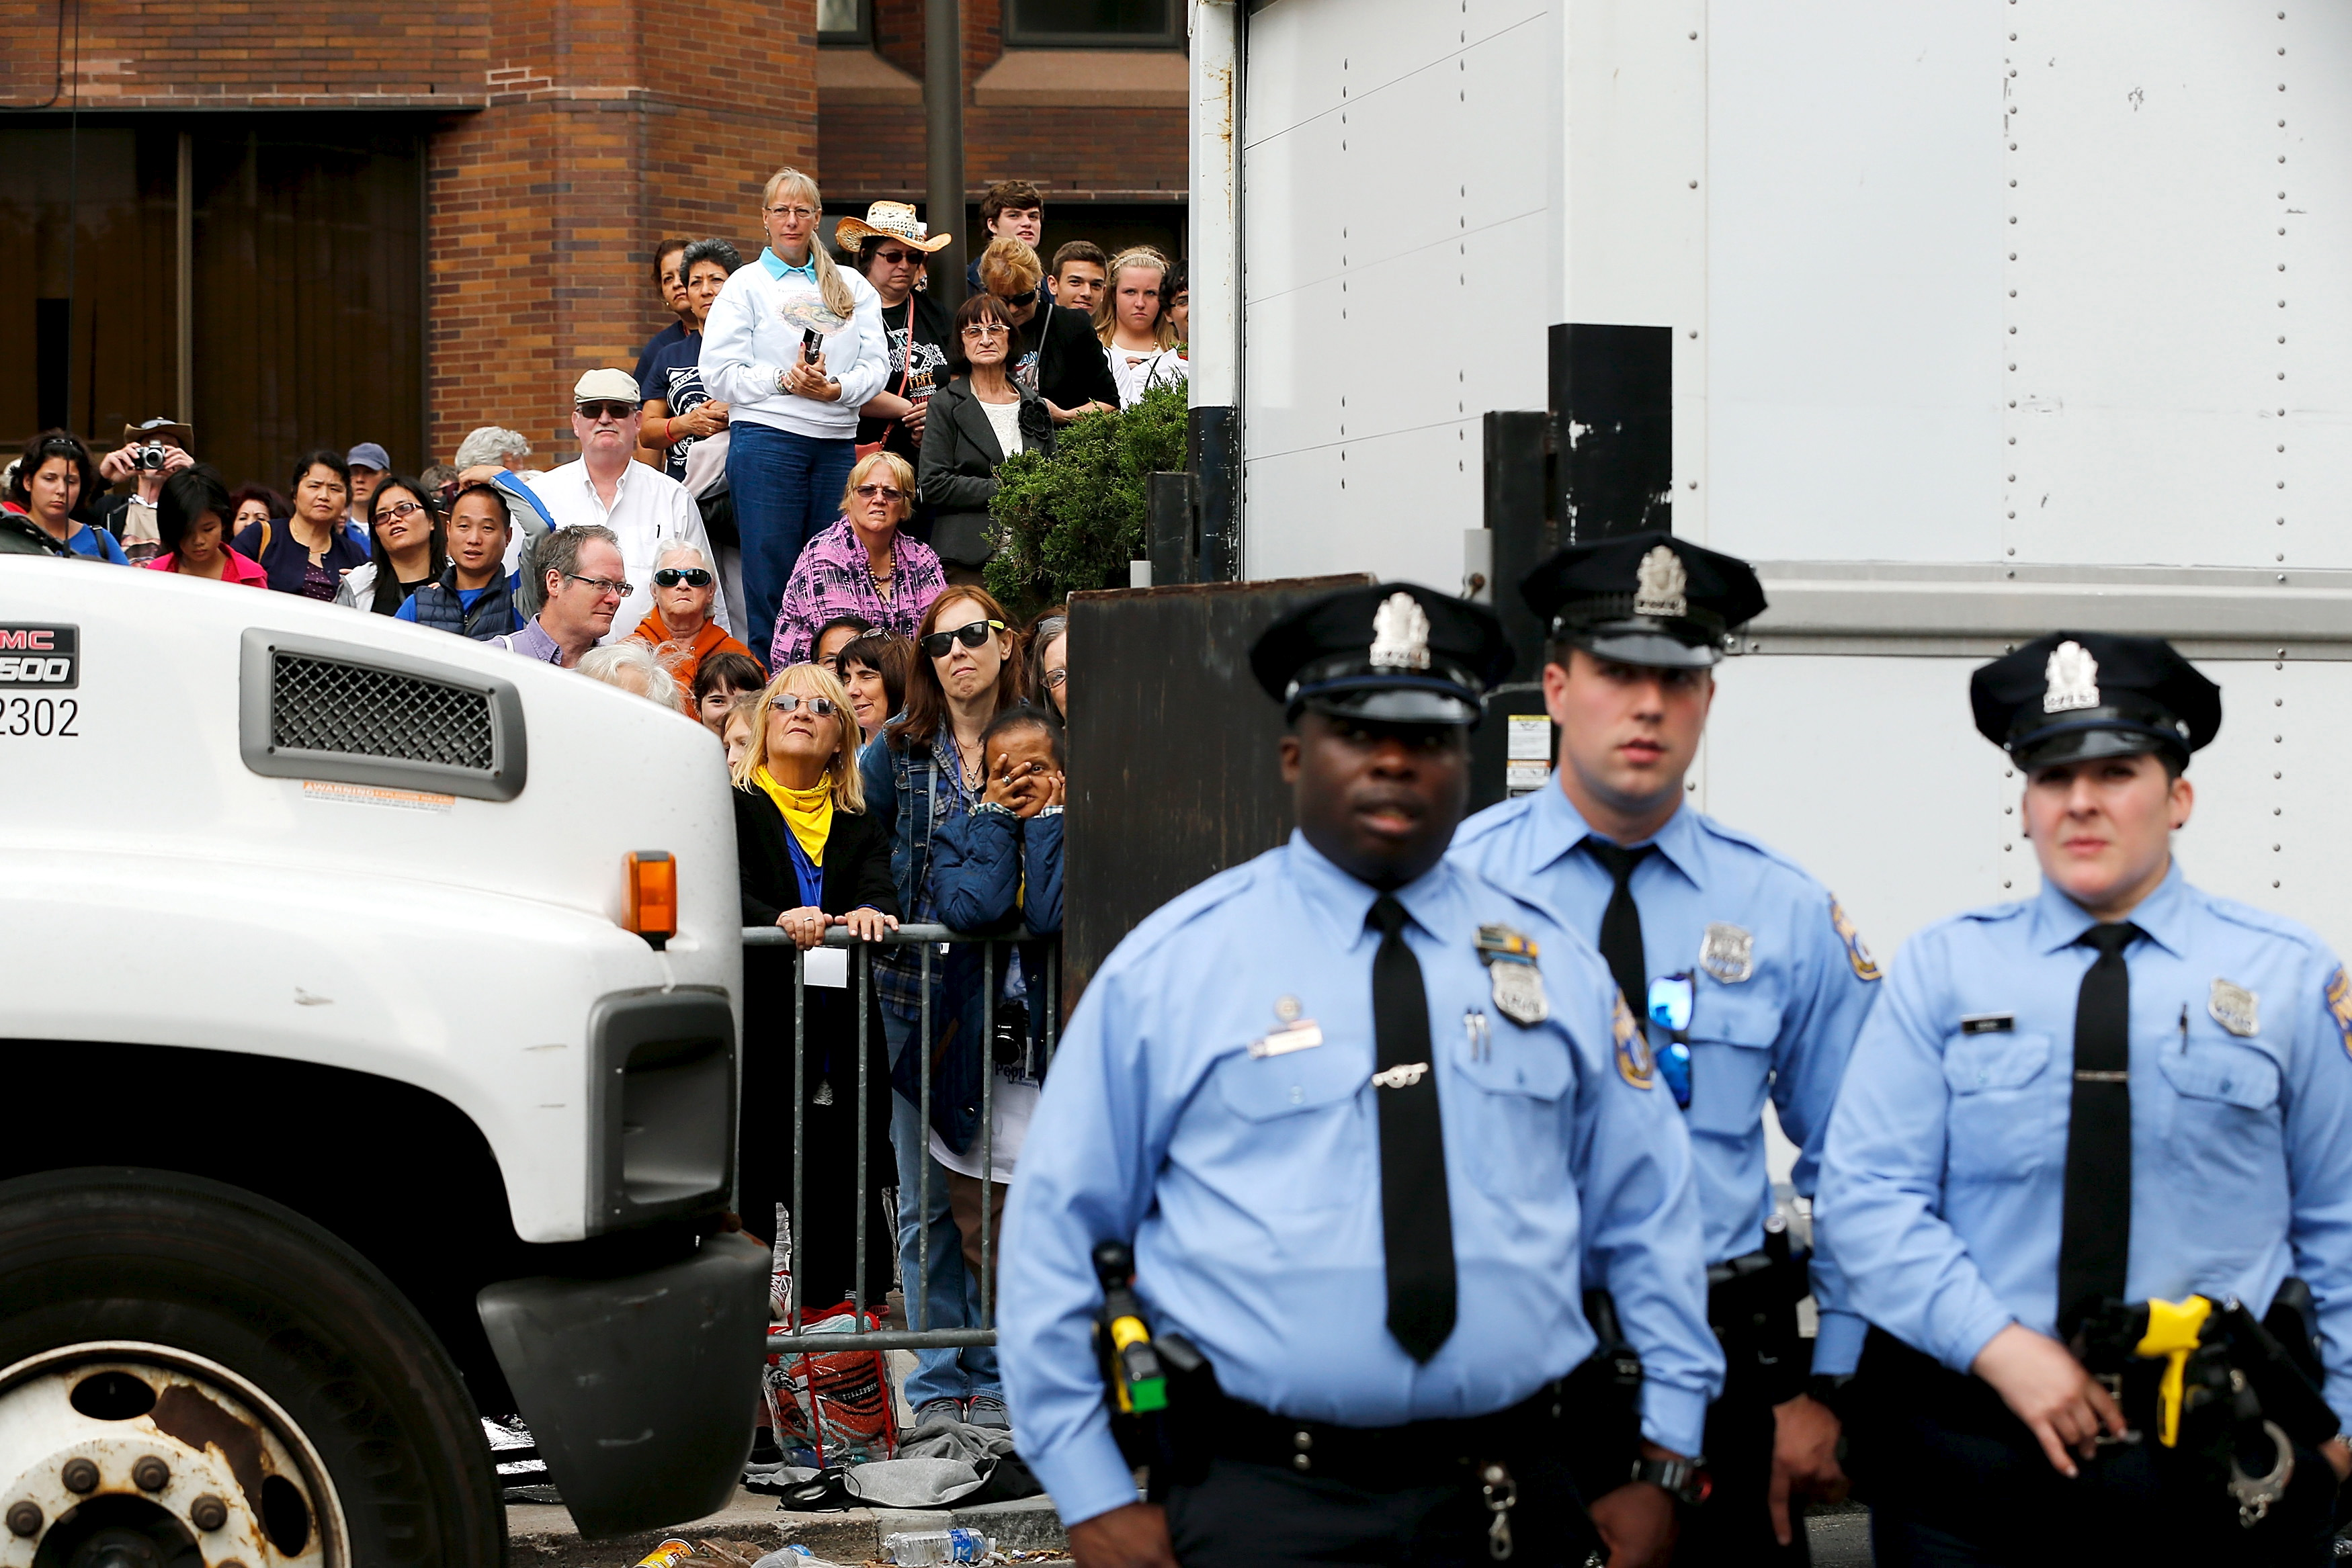 Police in front of crowd